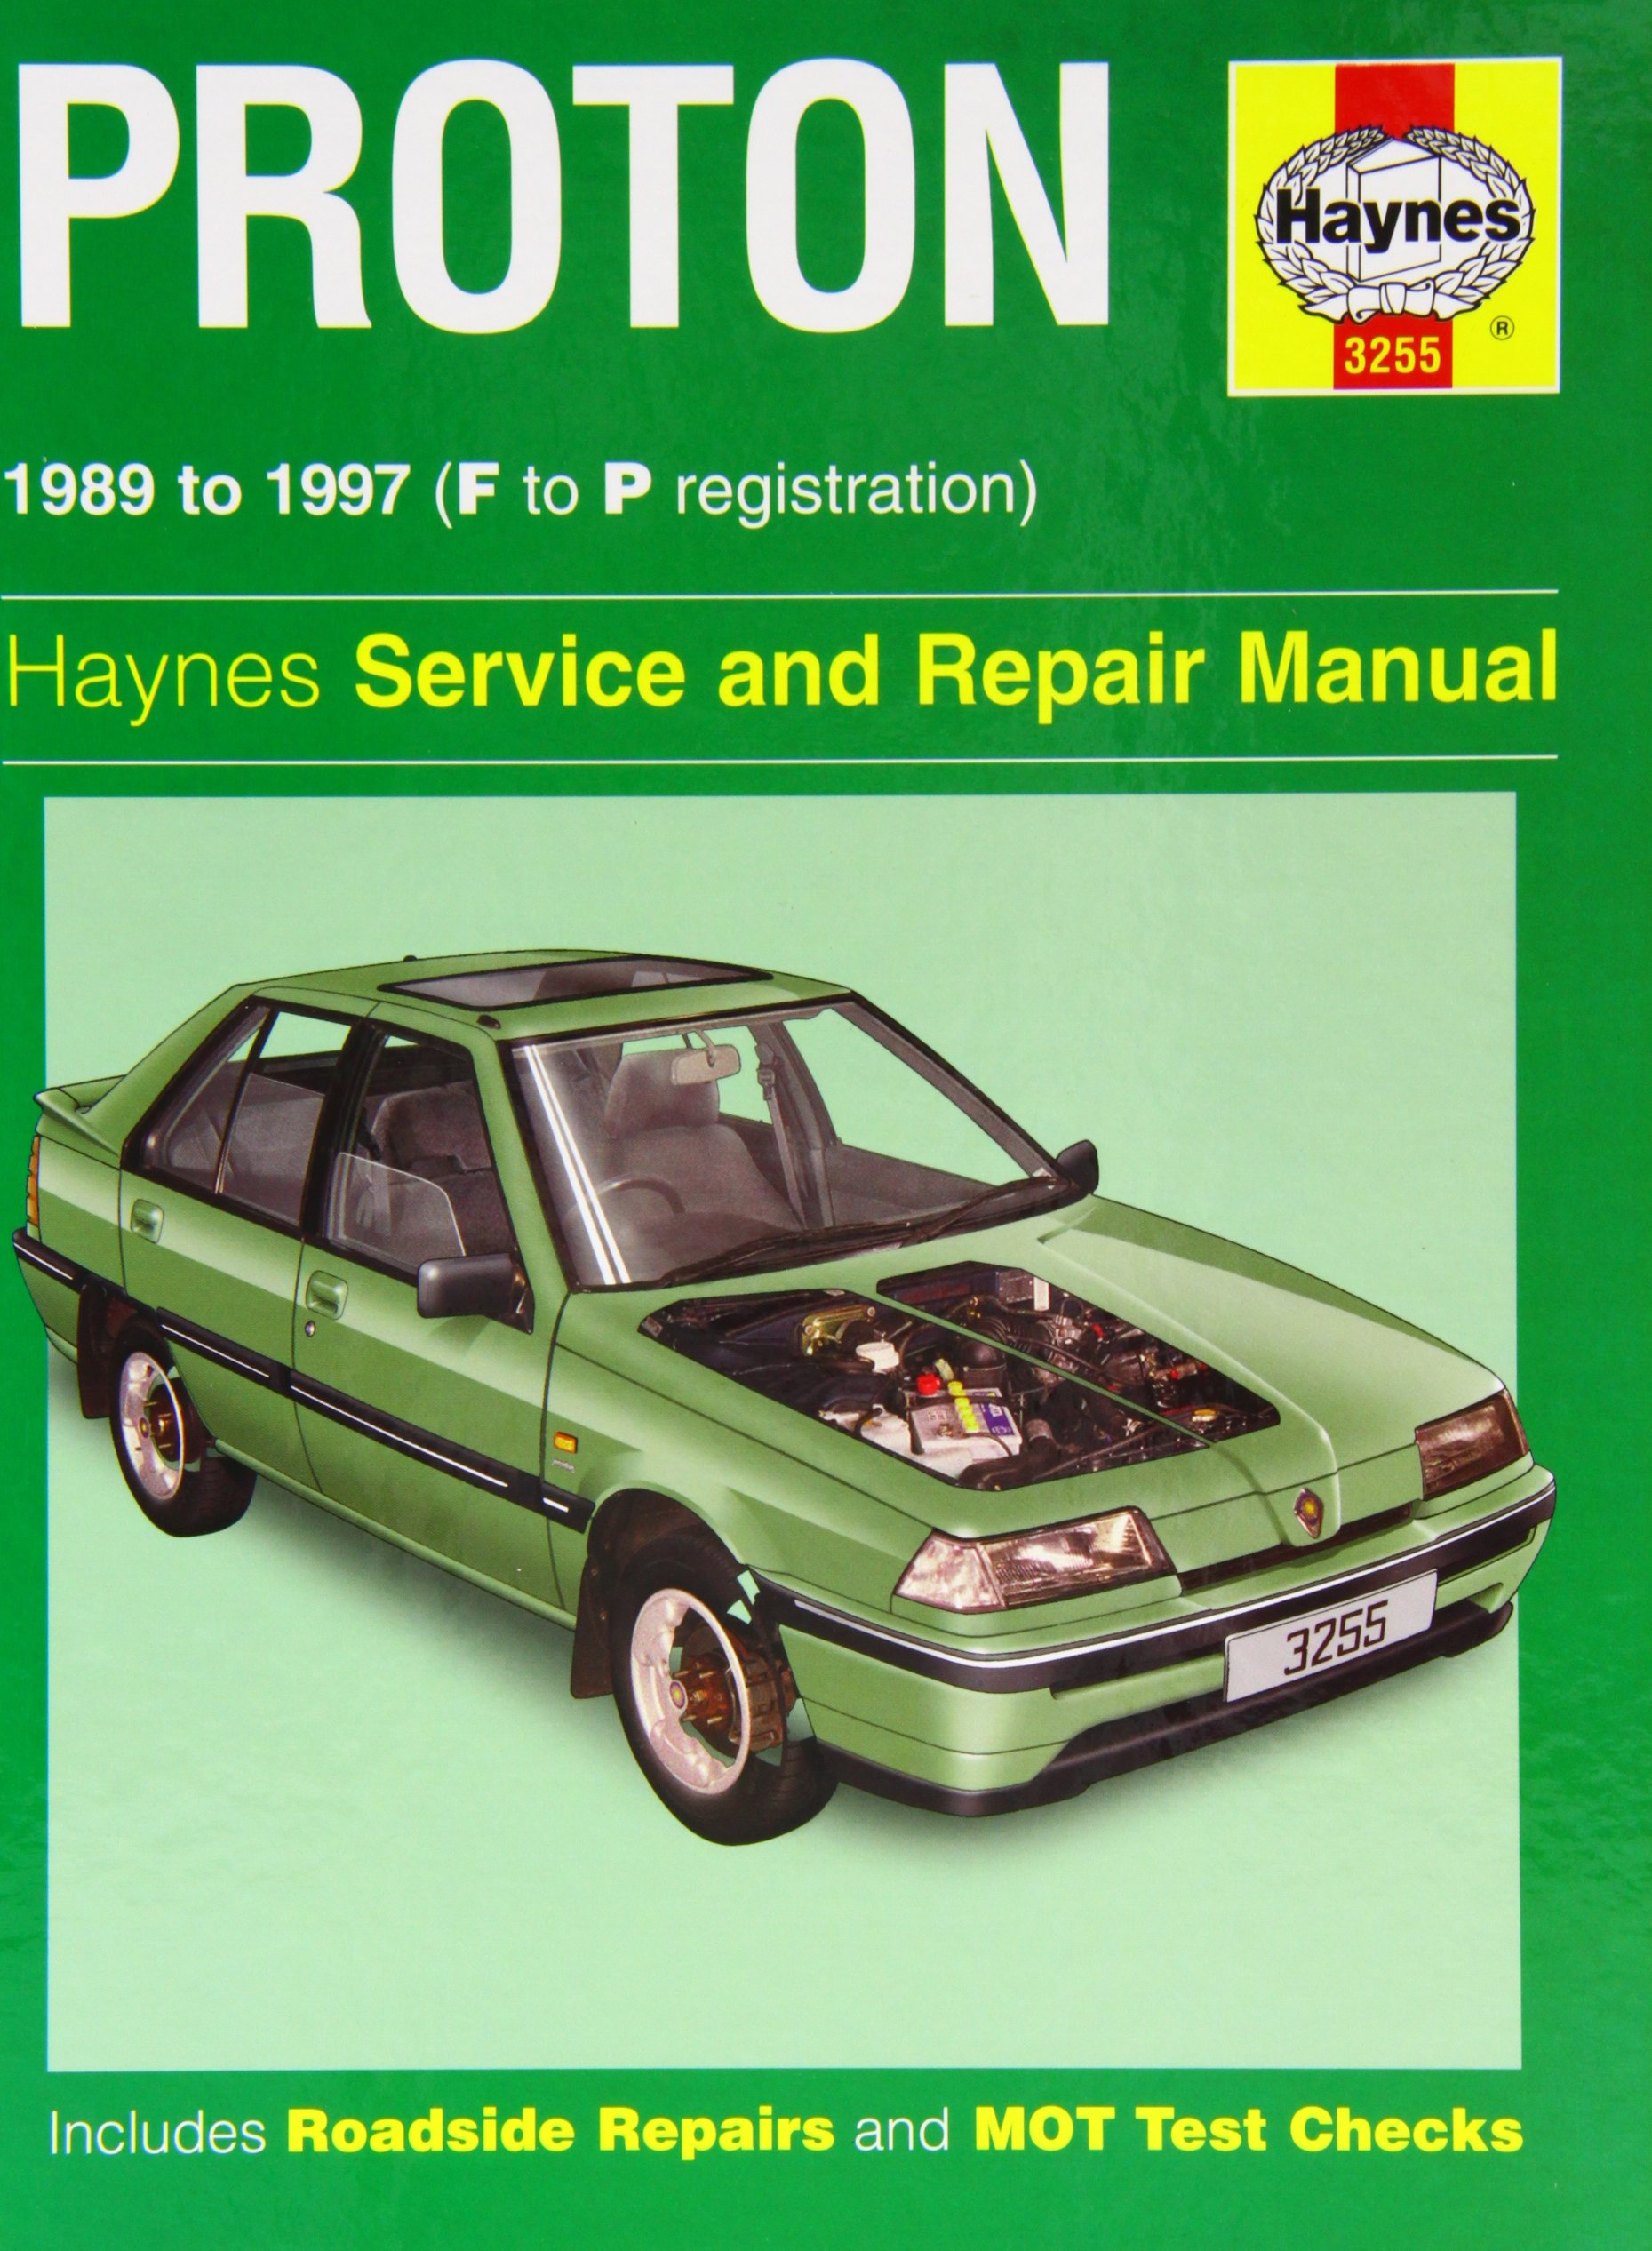 Proton (89-97) F To P (Haynes Service and Repair Manuals): Haynes  Publishing: 9781859602553: Amazon.com: Books